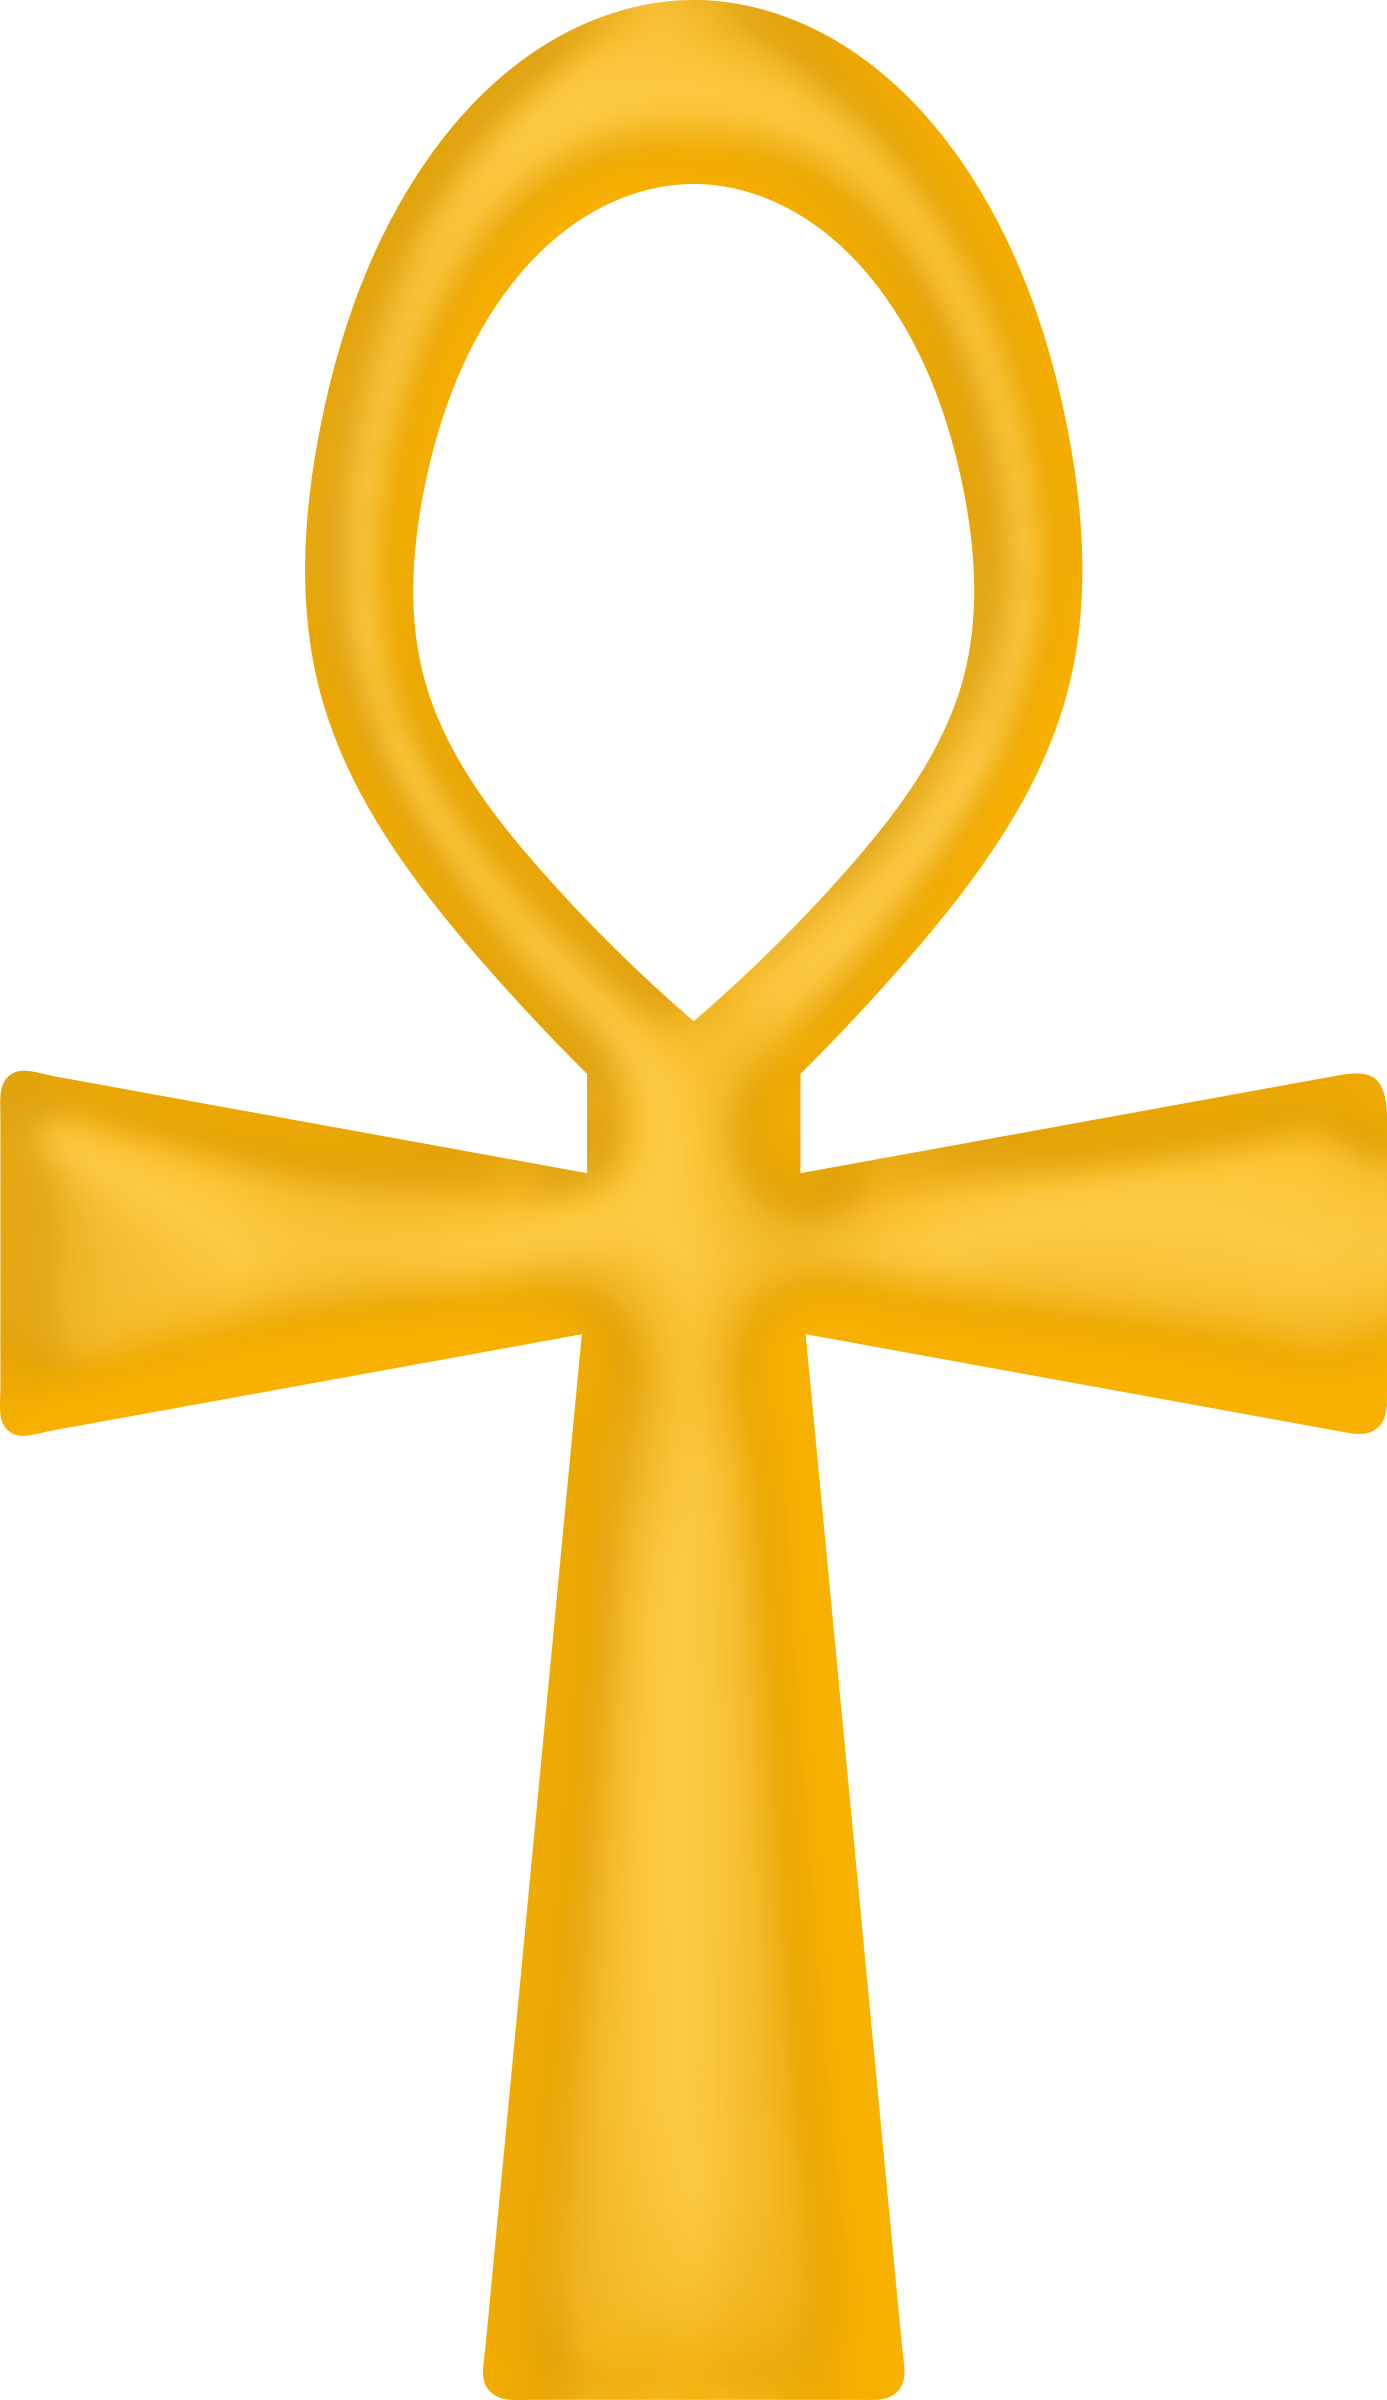 Ankh png. Golden icons free and